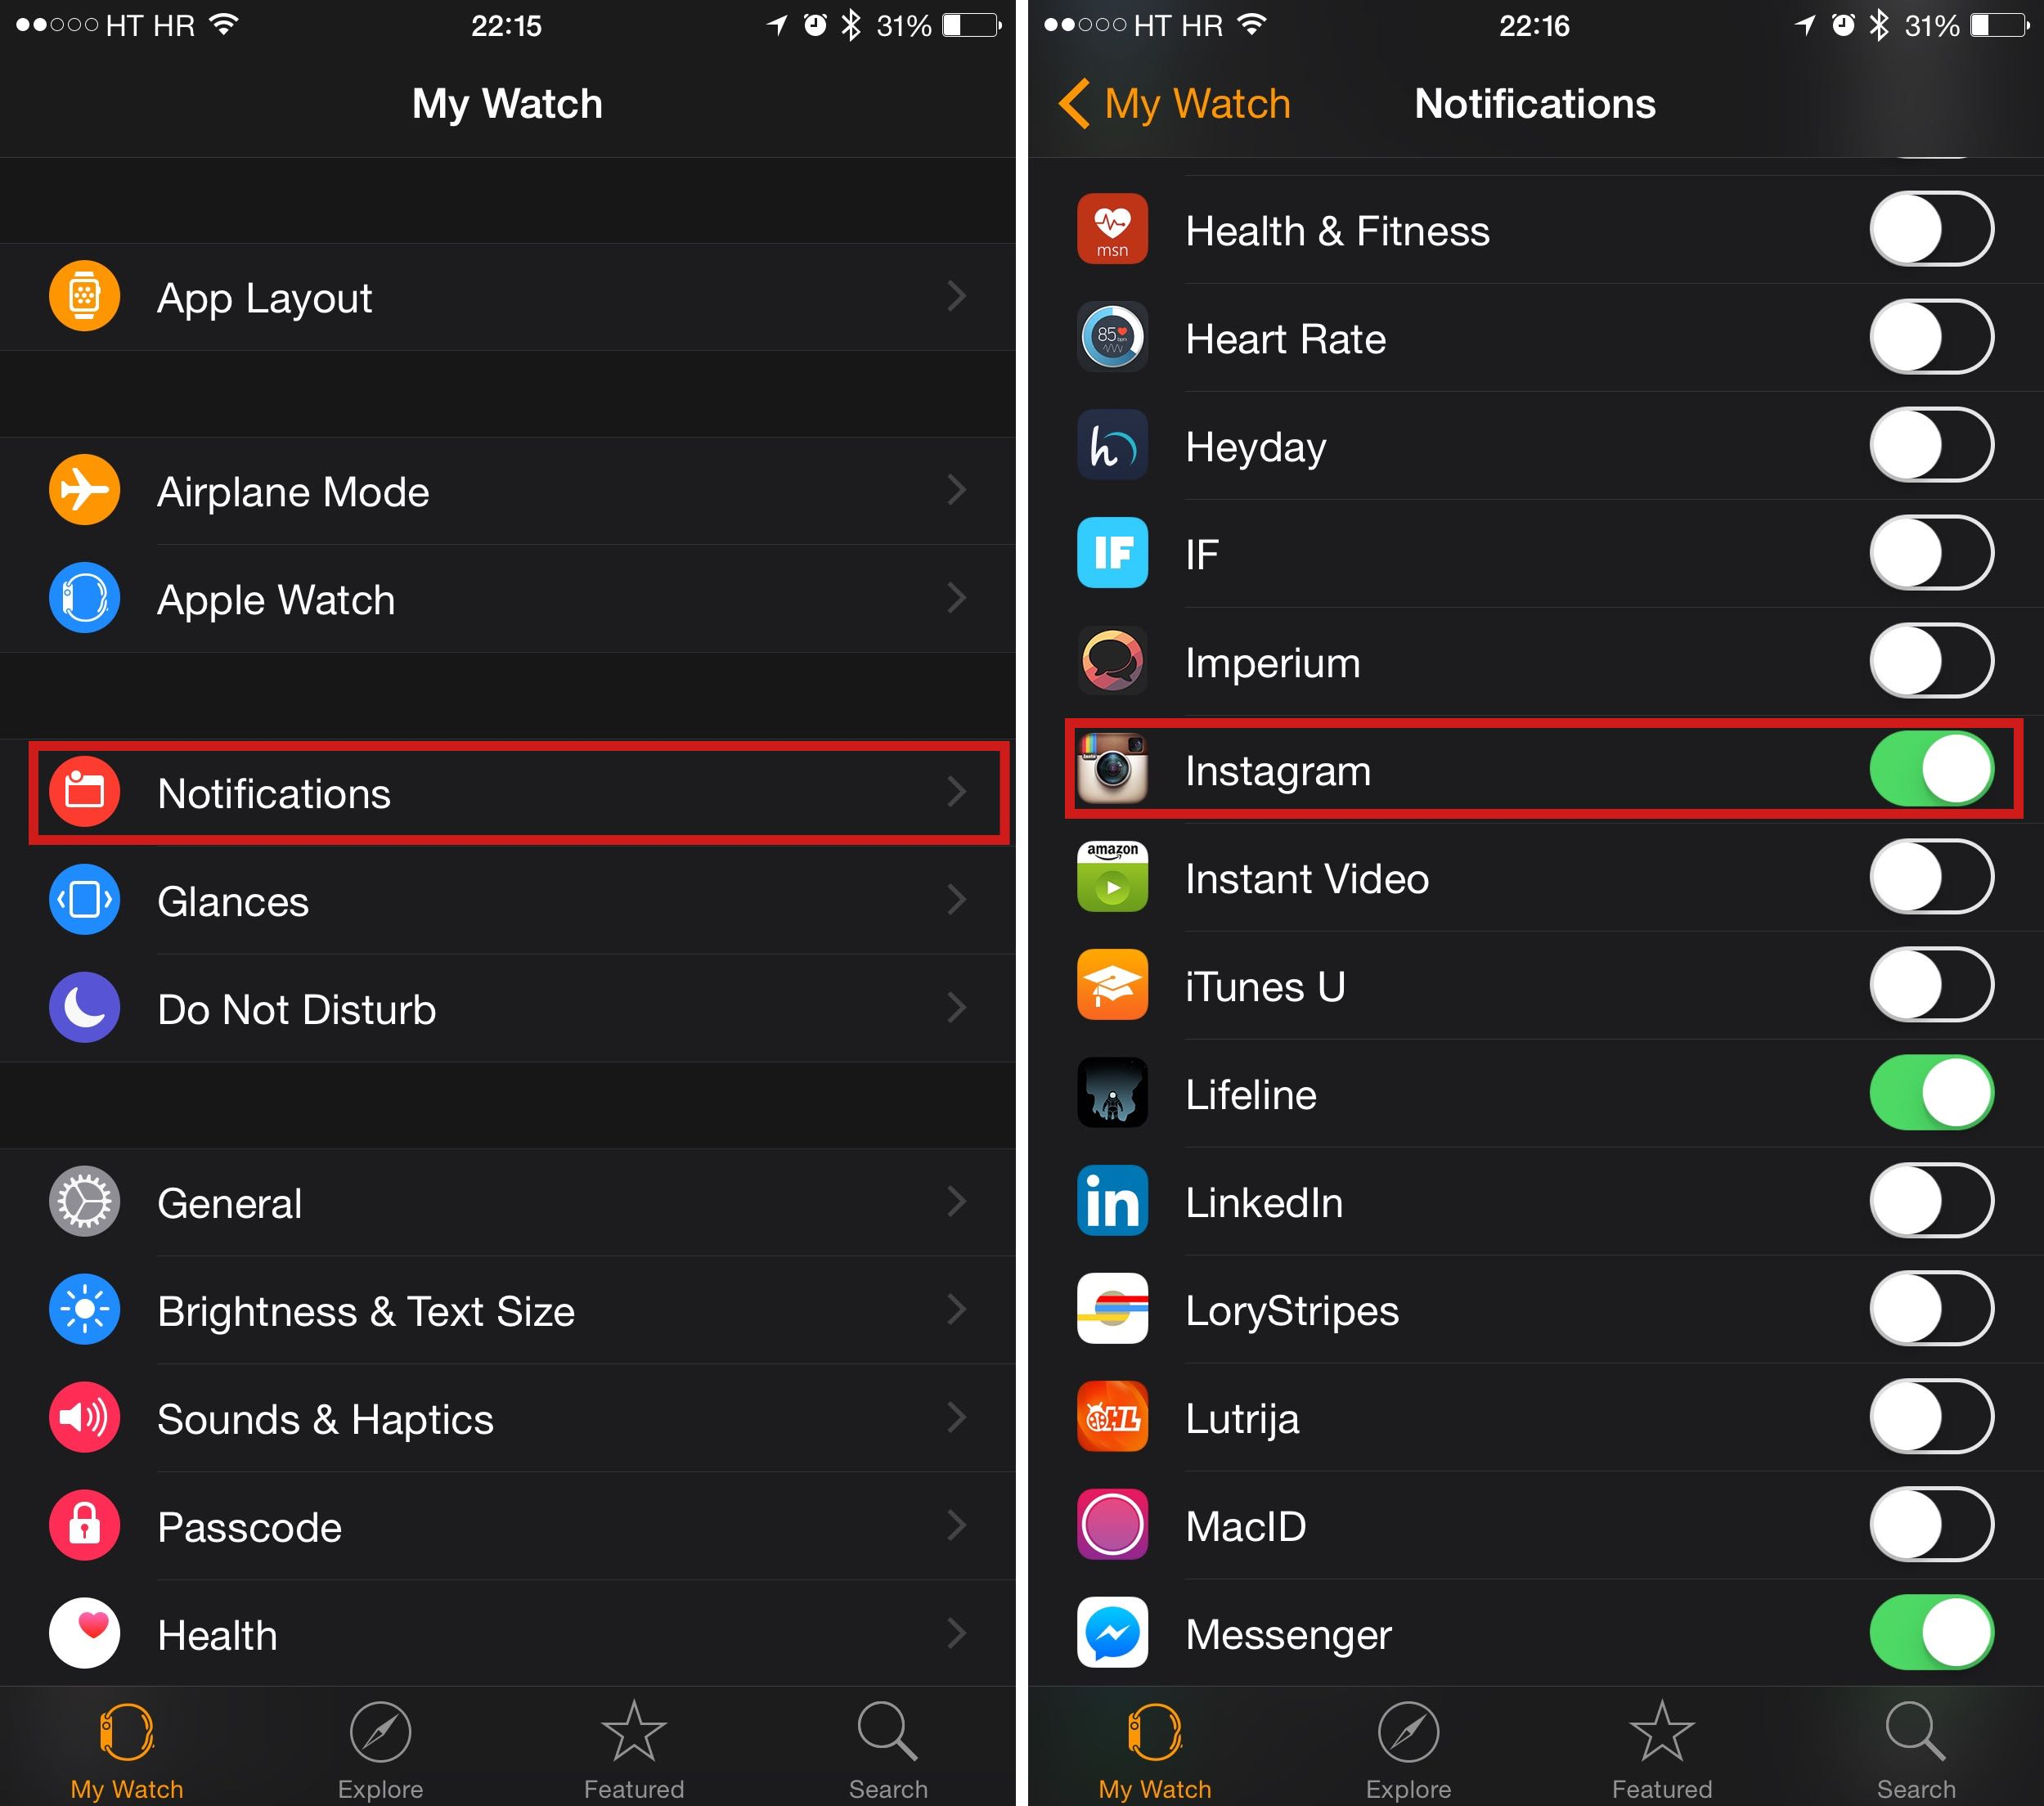 How to get notifications on Apple Watch when specific accounts post